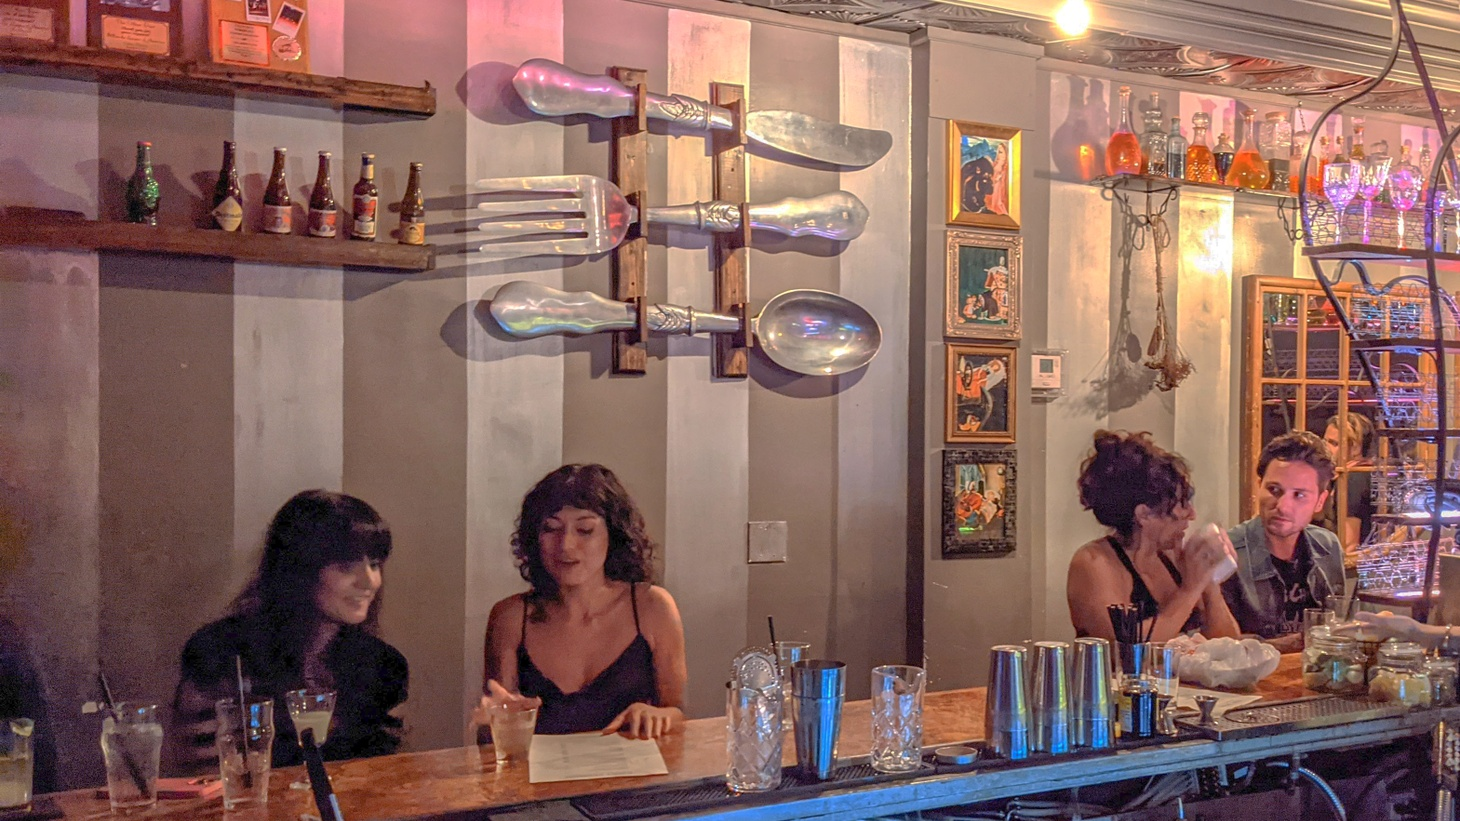 Without masks or social distancing, people enjoy drinks at Risky Business, a private bar in North Hollywood.